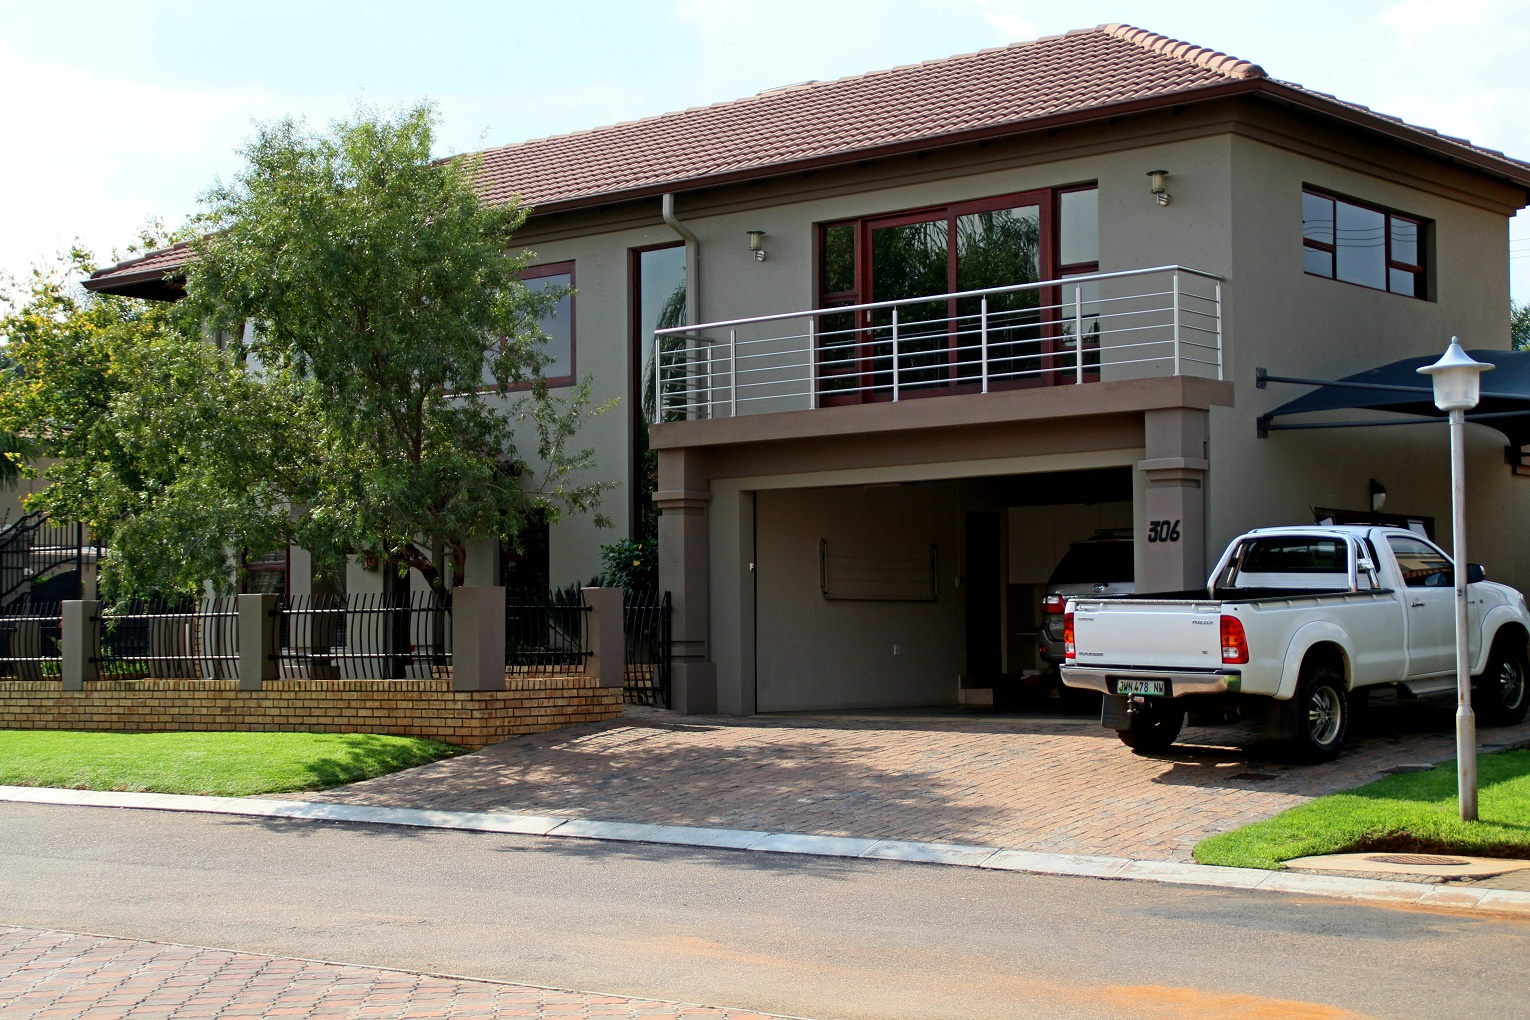 5 Bedroom House for Sale in Magalies View